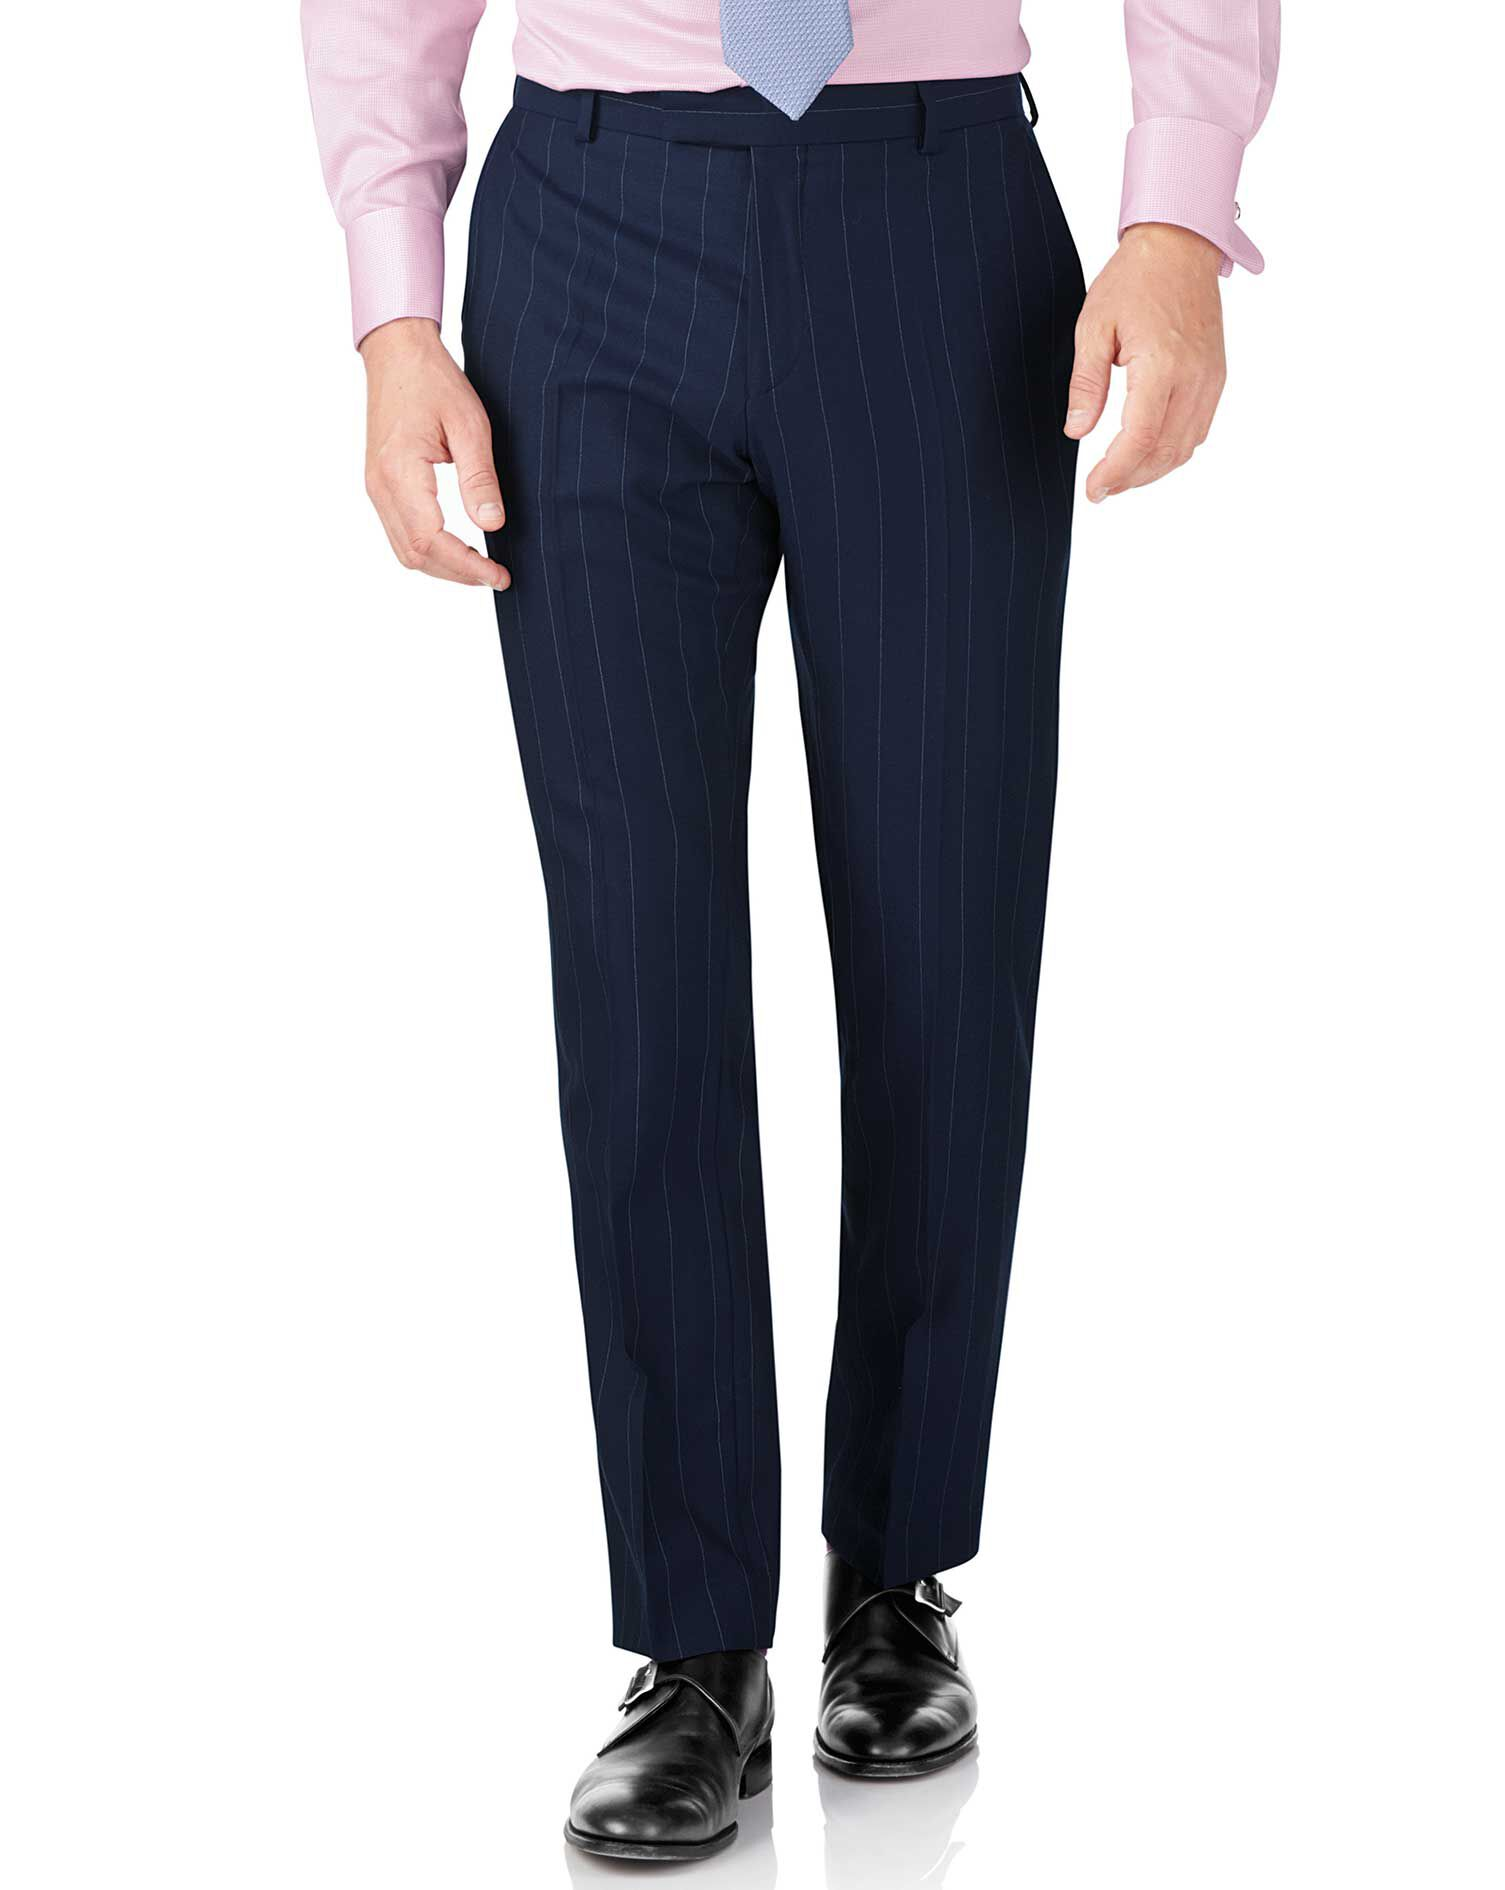 Navy Stripe Slim Fit British Serge Luxury Suit Trousers Size W40 L38 by Charles Tyrwhitt